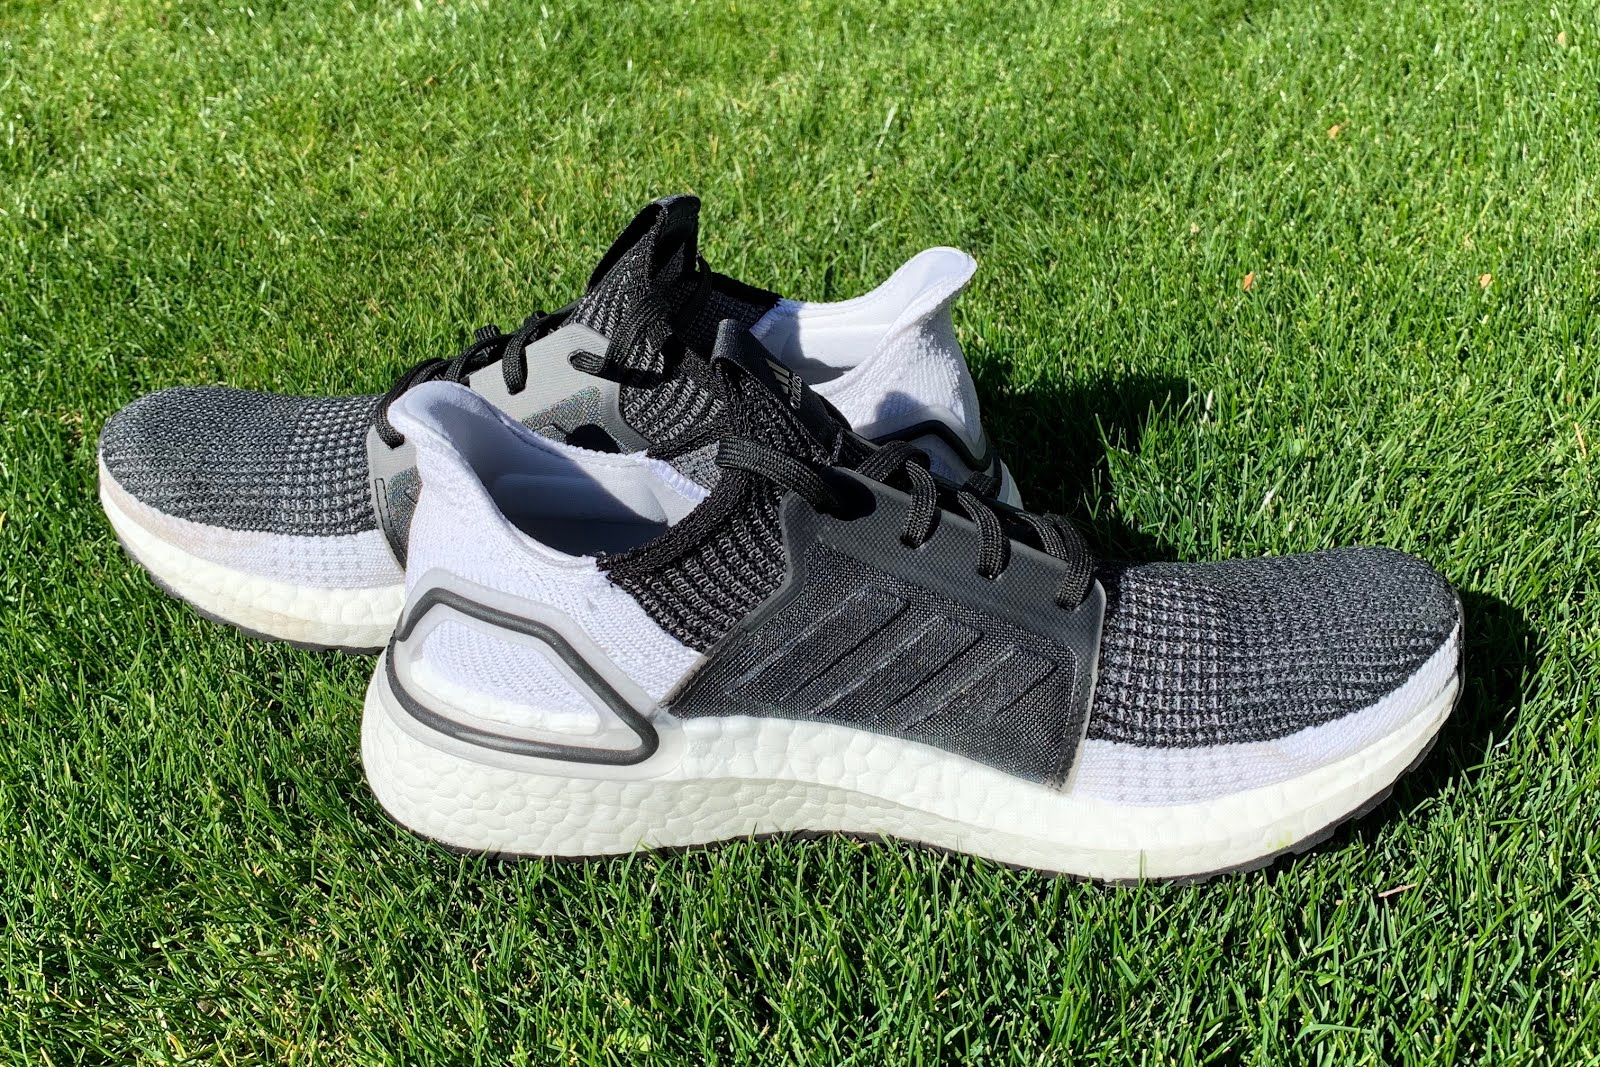 cc586471c1f Road Trail Run  adidas Ultra Boost 19 Review - Yes Virginia